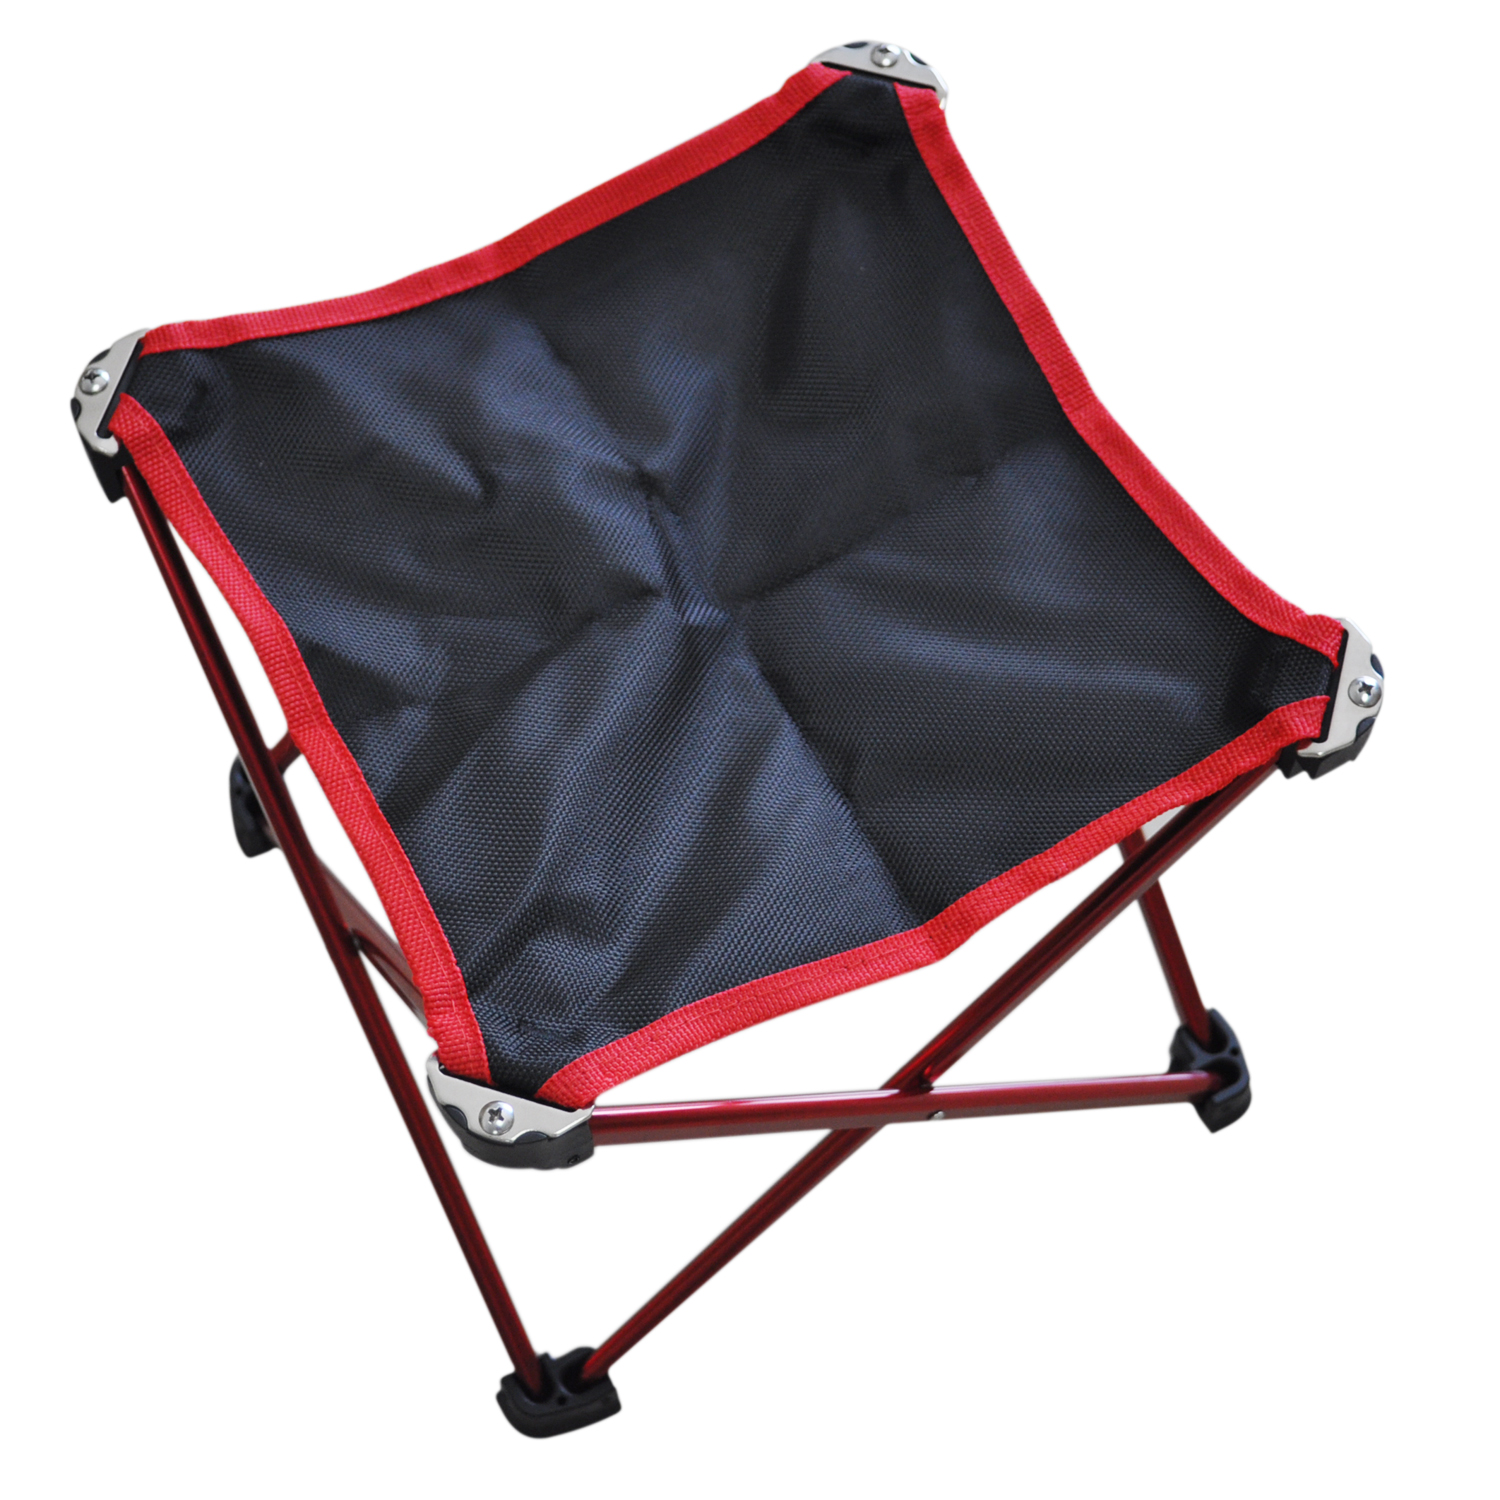 Anti Rutsch Teppich Outdoor 8 Bein Anti Rutsch Klapphocker Sitz Outdoor Camping Angeln